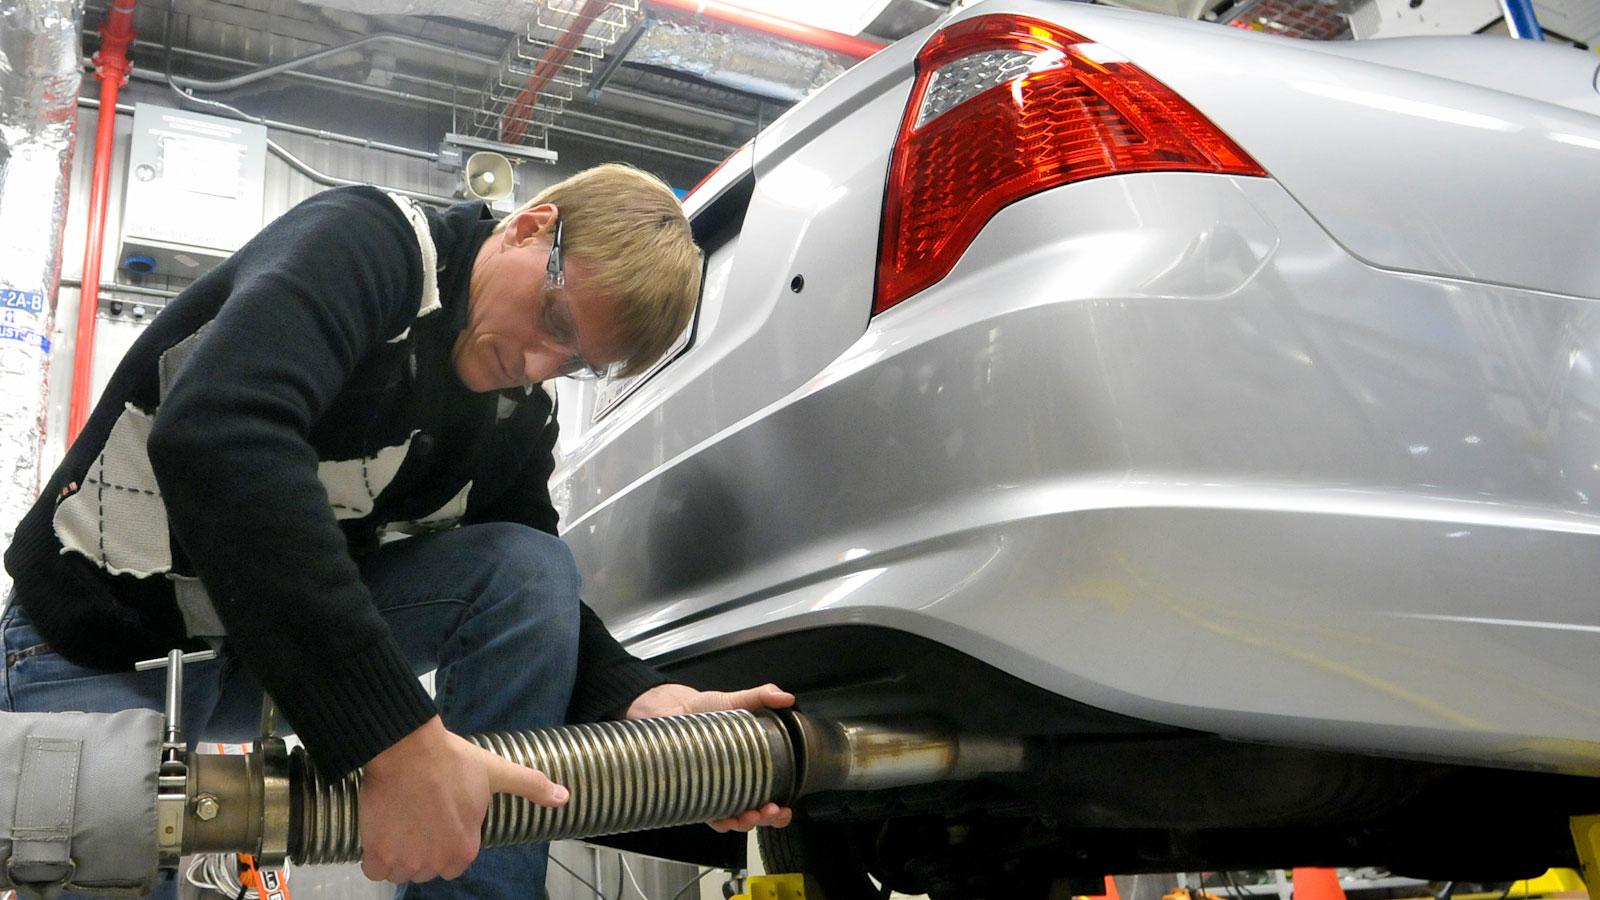 <h6 class='slideTitle'>Actions the Trump administration is taking</h6><h4 class='slideSubtitle'>Rolling back clean car standards</h4><h5 class='slideText'>The Trump administration has moved to roll back federal Clean Car standards, one of our best tools to reduce tailpipe emissions that contribute to smog, which threatens our health.</h5><p class='slideCredit'>Preparing a vehicle for tailpipe emissions measurements. <br>Argonne National Laboratory via Flickr CC BY-NC-SA 2.0</p>